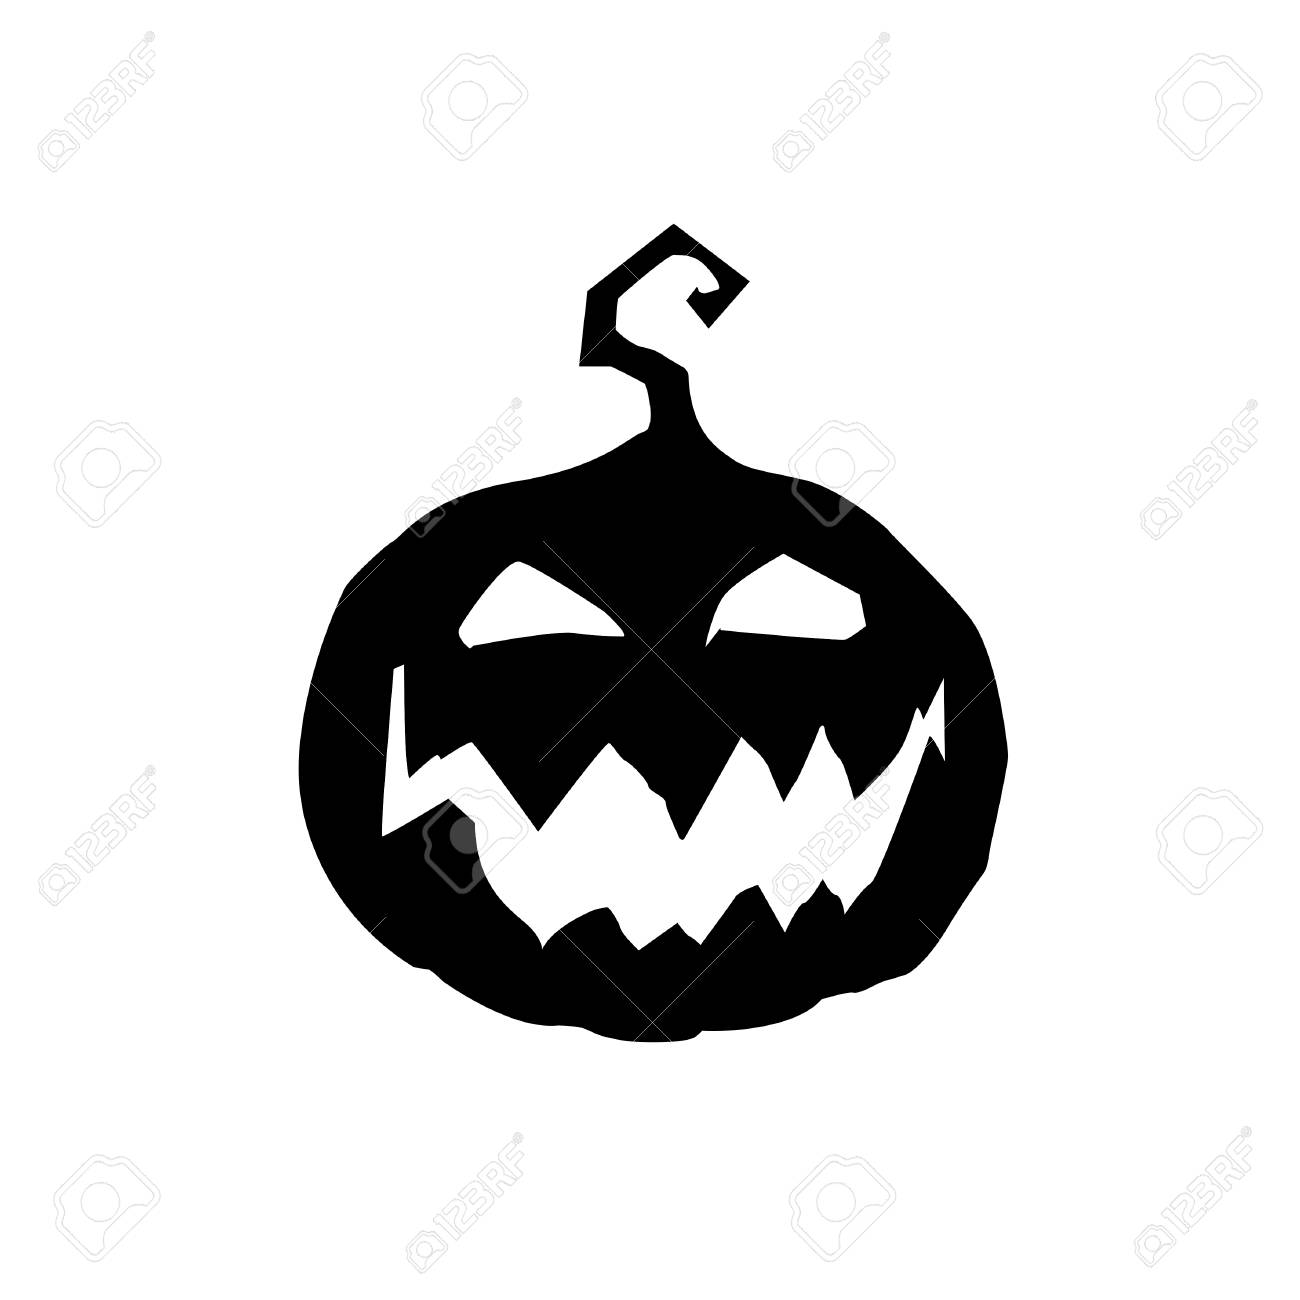 Halloween Vector Black And White.Halloween Vector Illustration Of Scary Pumpkin Jack Face Black